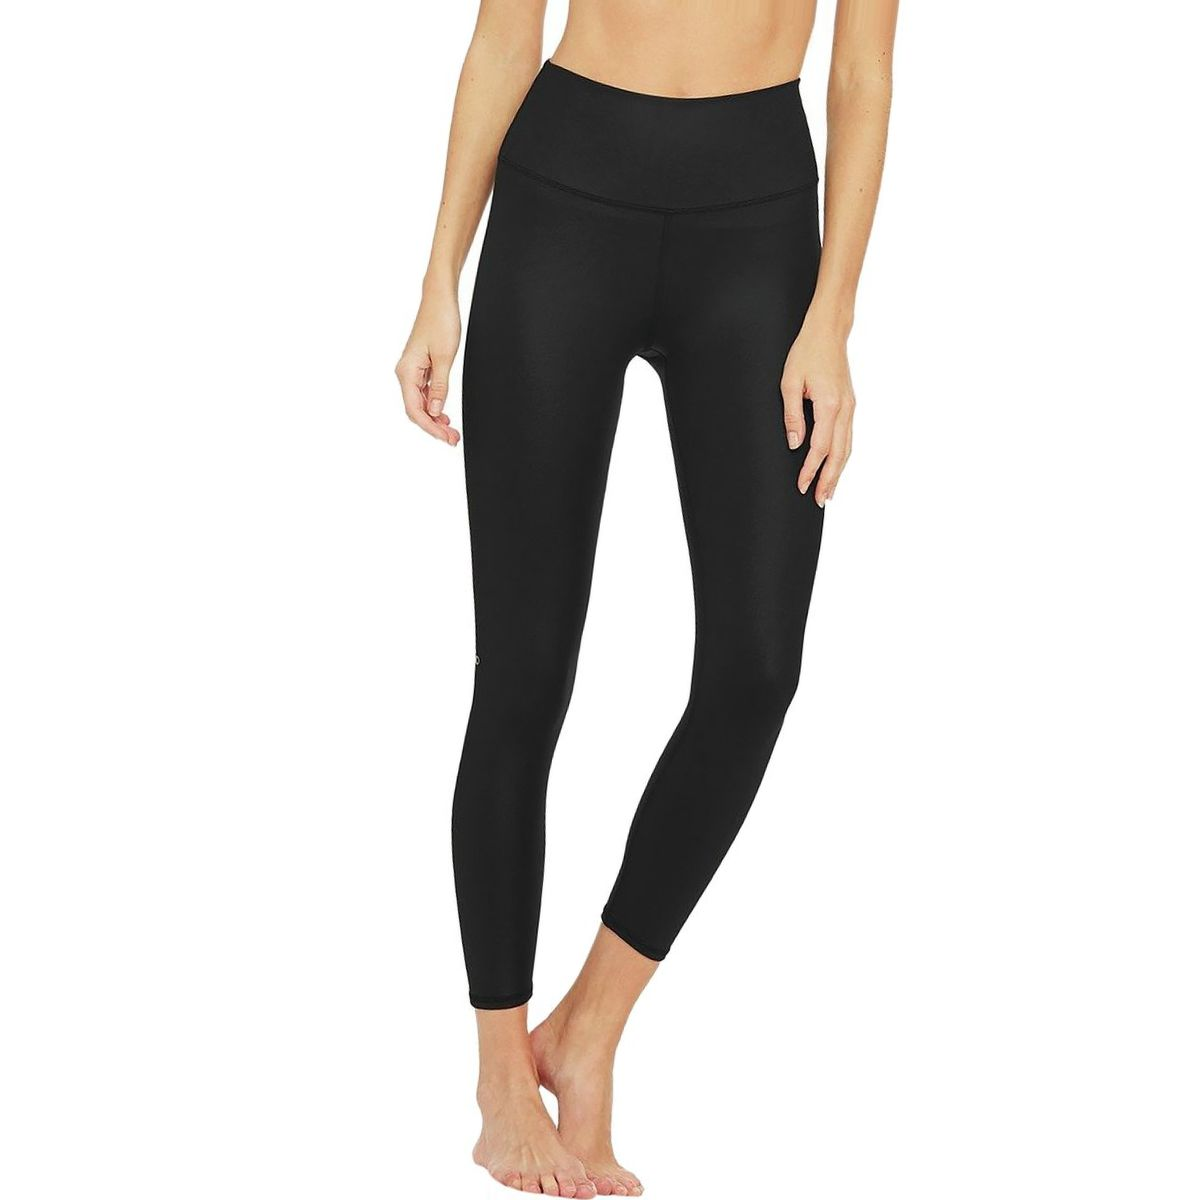 Alo Yoga 7/8 High-Waist Airbrush Legging - Women's